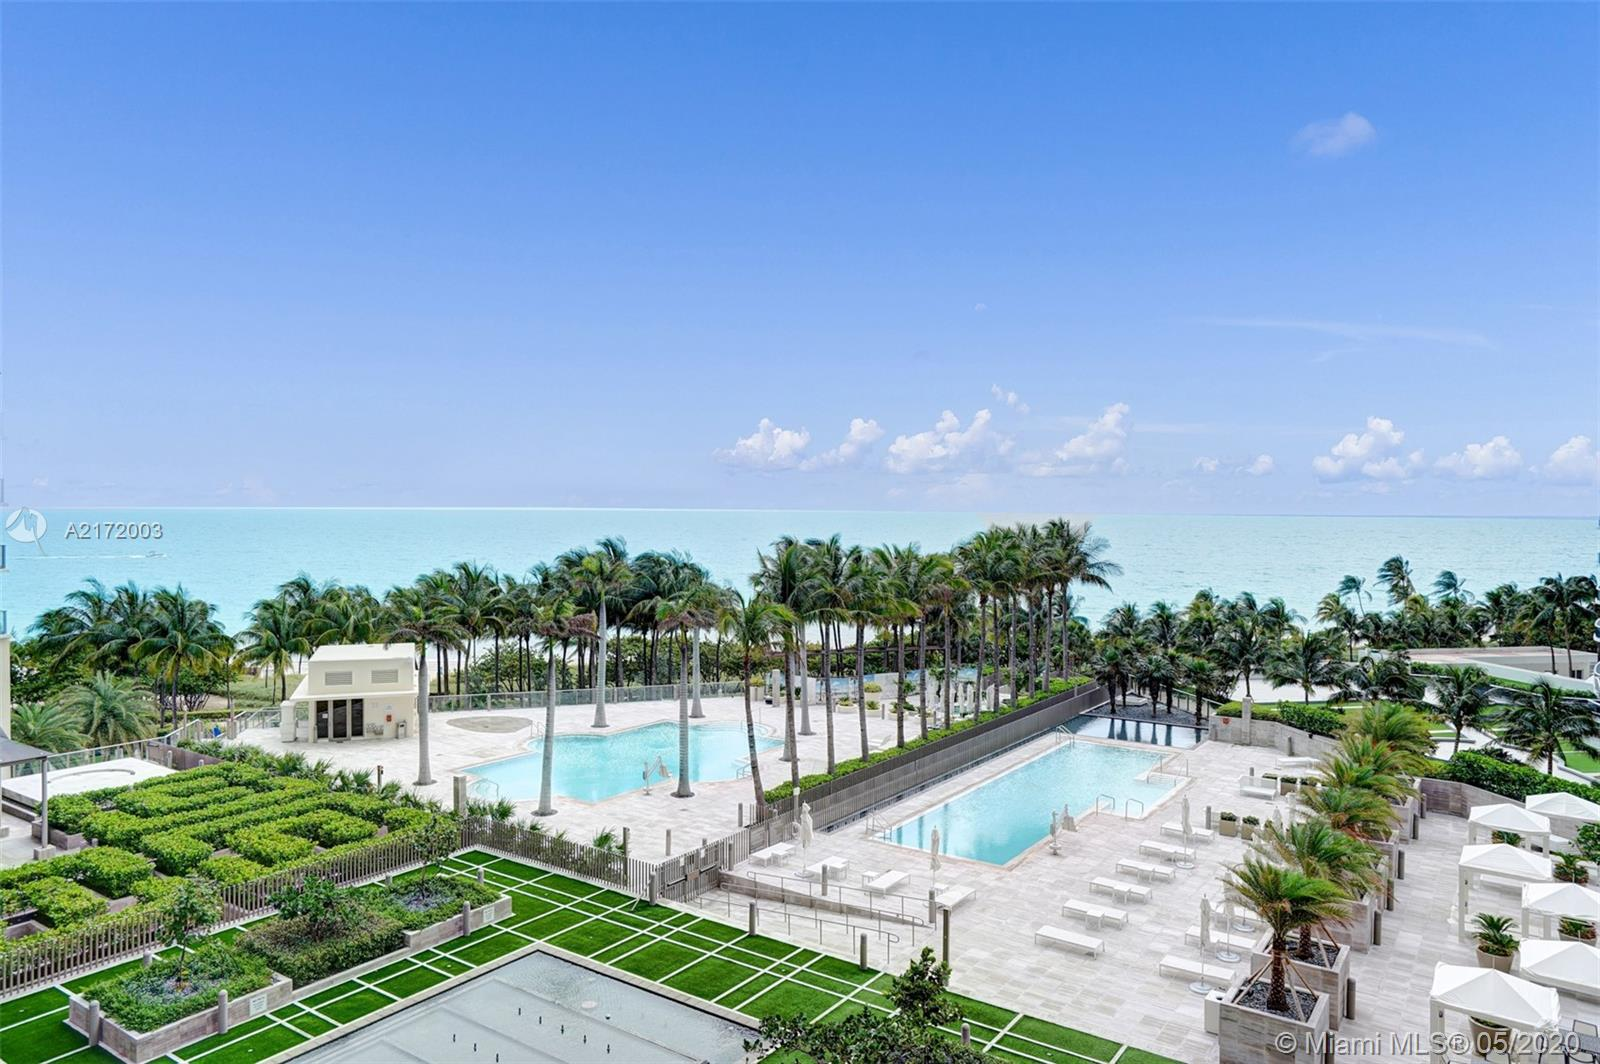 9701 Collins Av #603S, Bal Harbour, FL 33154